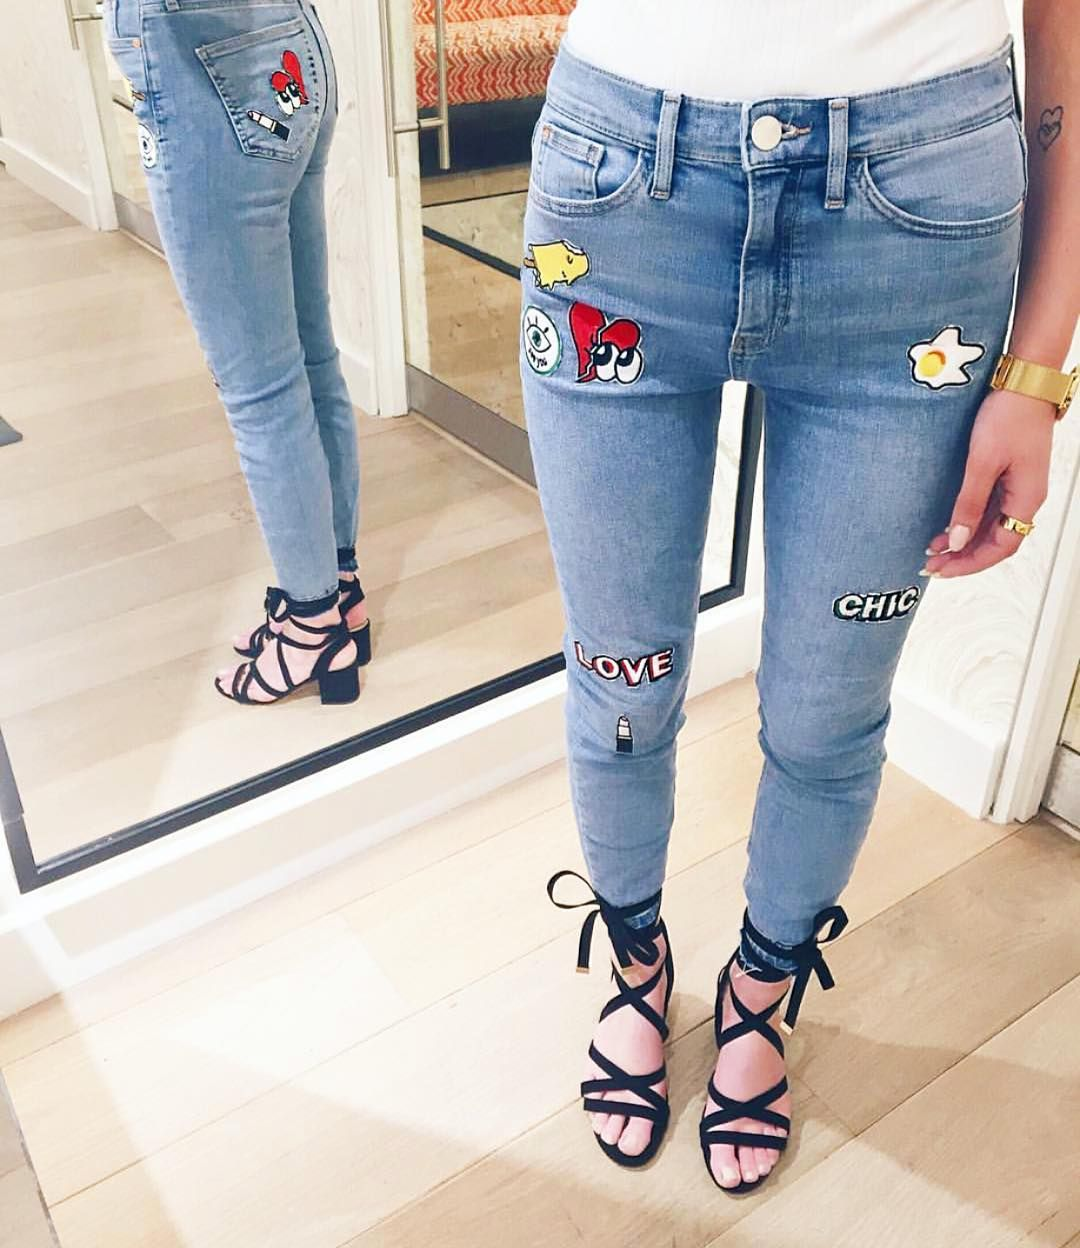 CLICK HERE http://www.youtube.com/channel/UCqEqHuax3qm6eGA6K06_MmQ?sub_confirmation=1 Patch perfect!Fashion's falling for denim this season & our staple Lori's just got a whole lot sassier! Show us how you're styling your #RIdenim this season with #ImWearingRI Jeans: 685773 | 40 Shoes: 682062 | 40 #RIdenim #RIStyleStudio #denim #patch #badges #kitsch #fashion #style #ss16 by riverisland